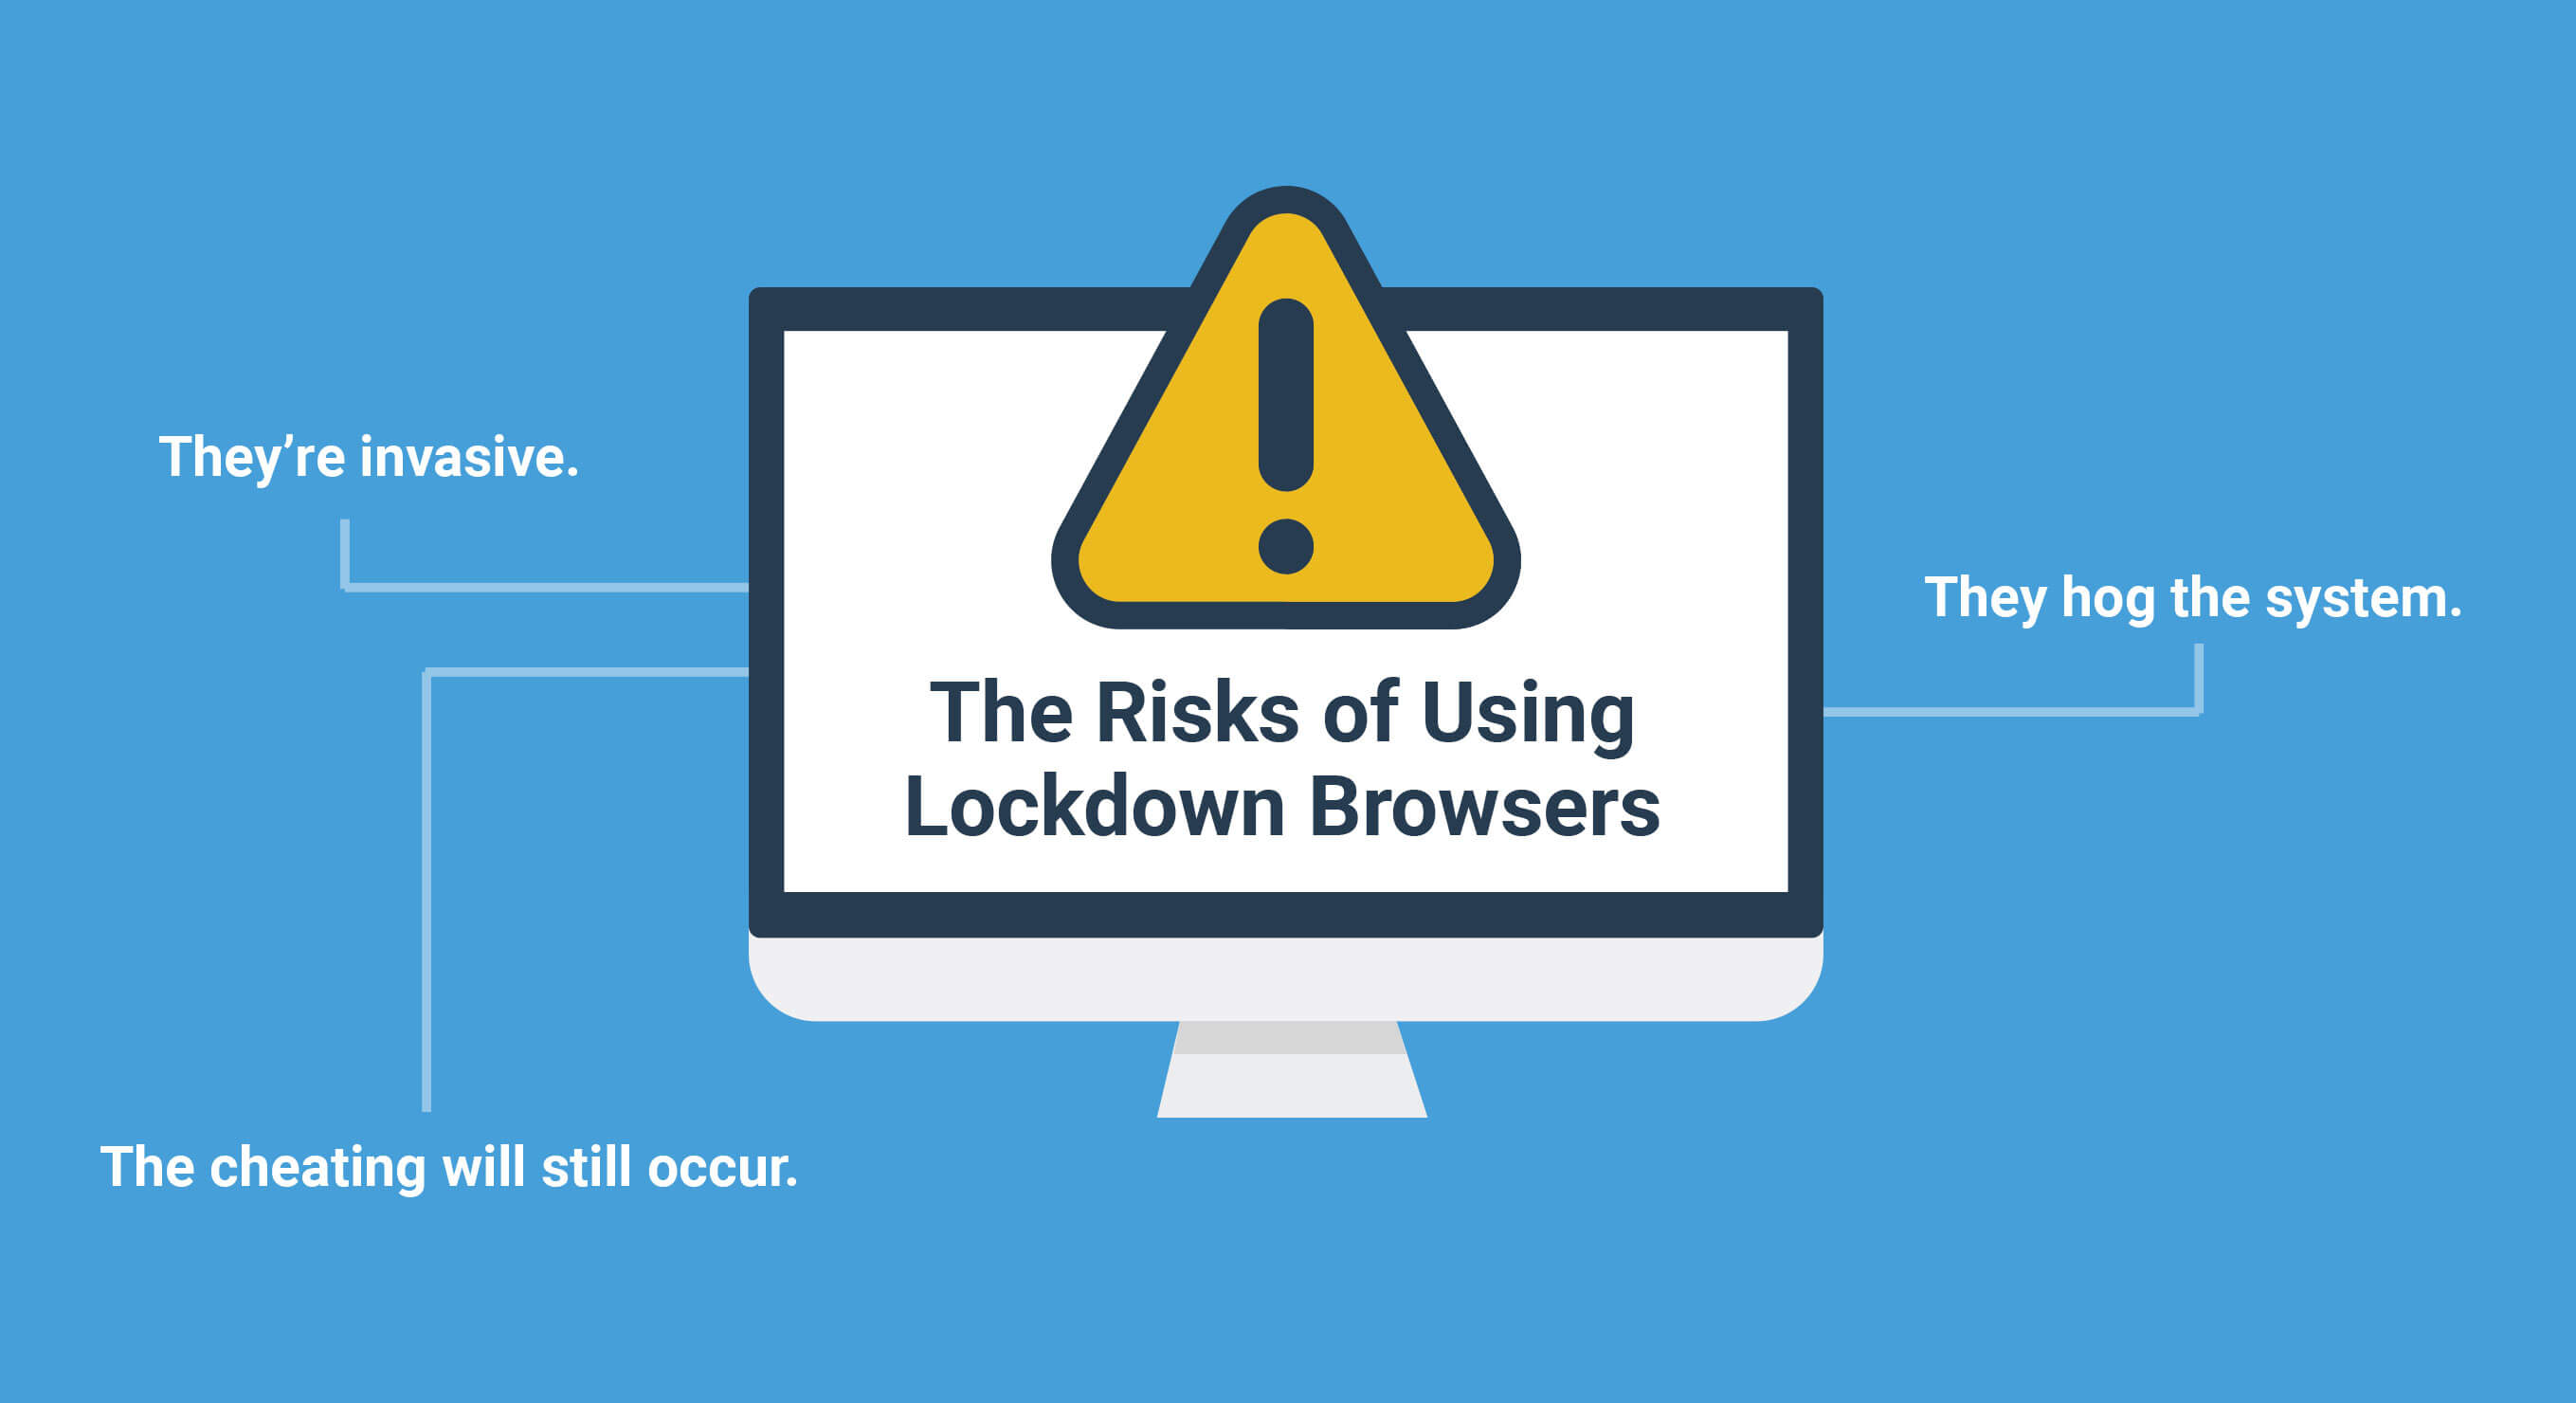 Risks of Using Lockdown Browsers